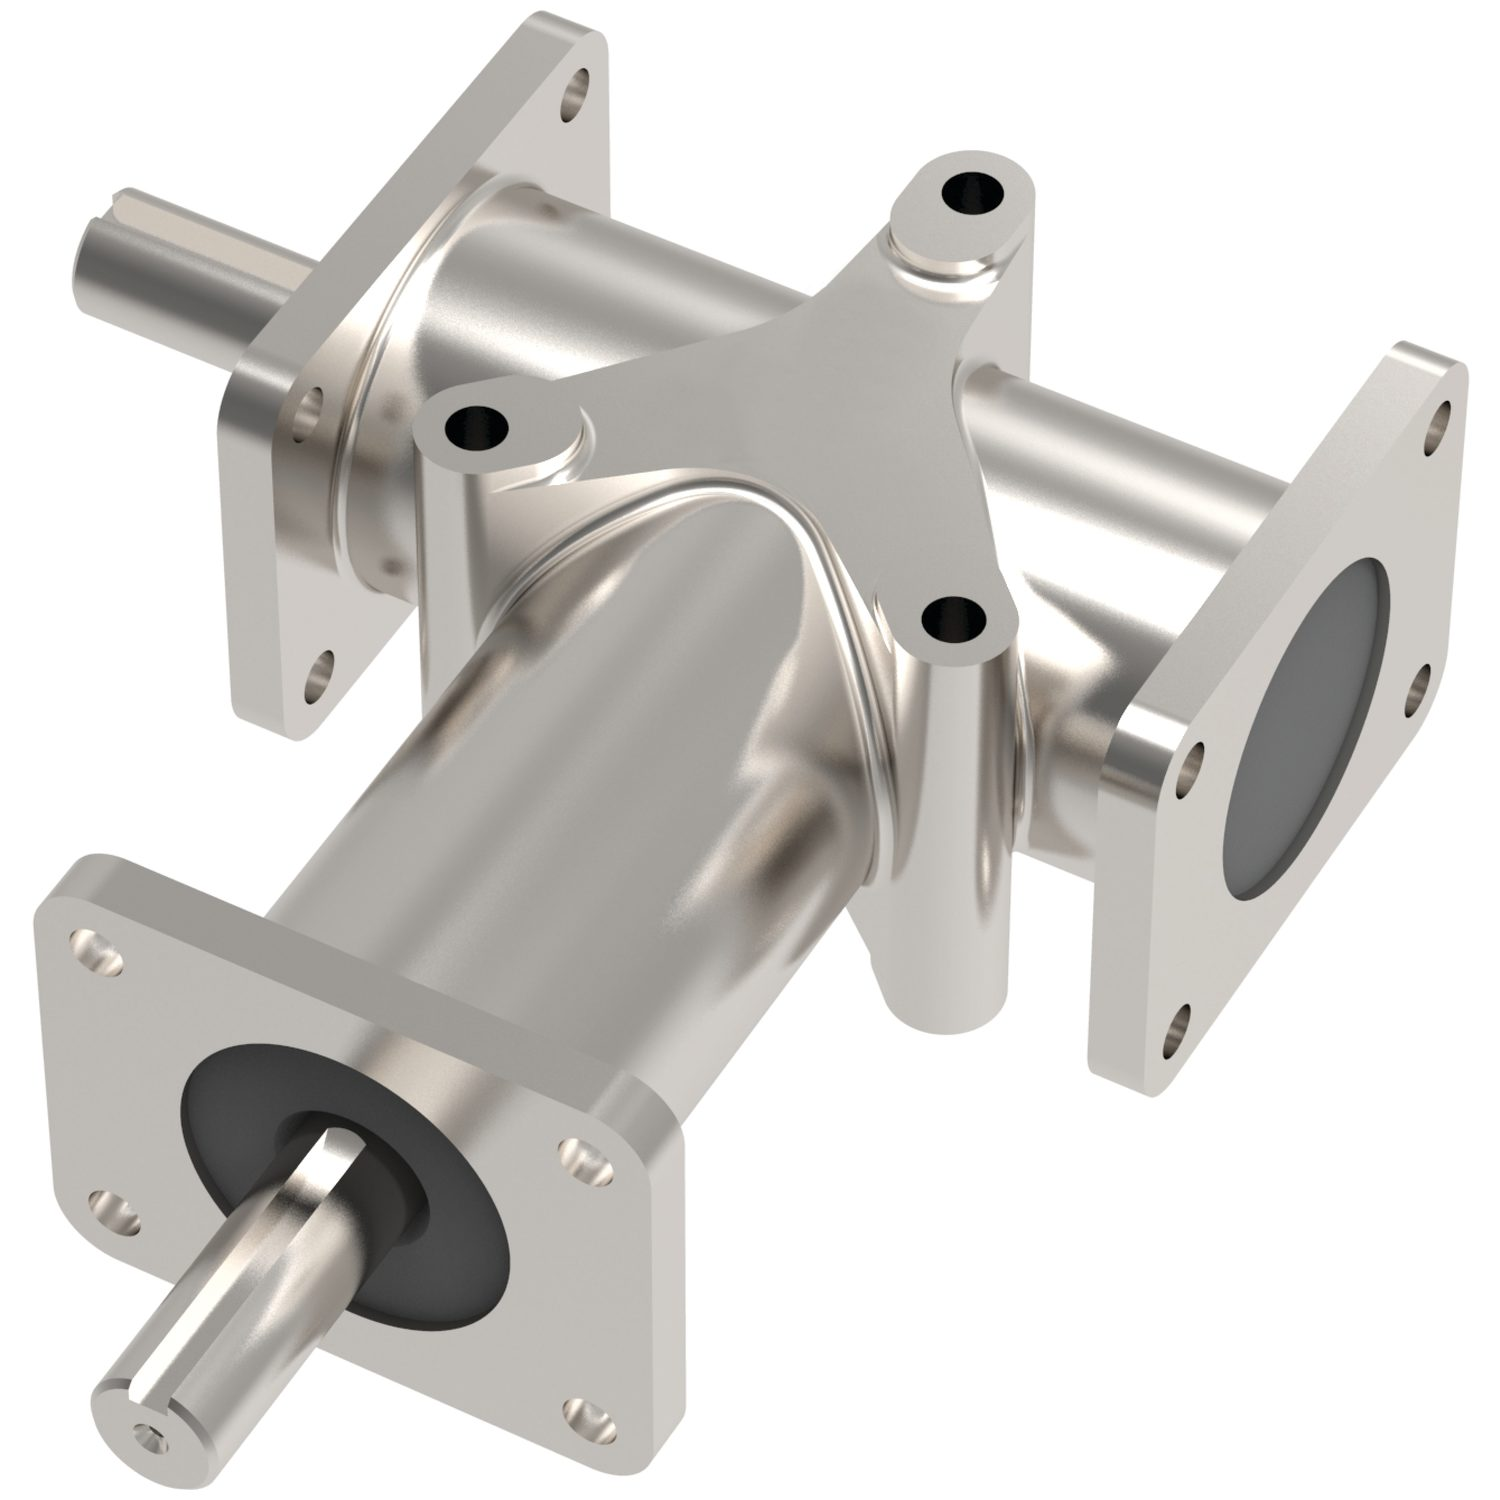 R2354 - Stainless Right Angle Drives - 2 Shafts